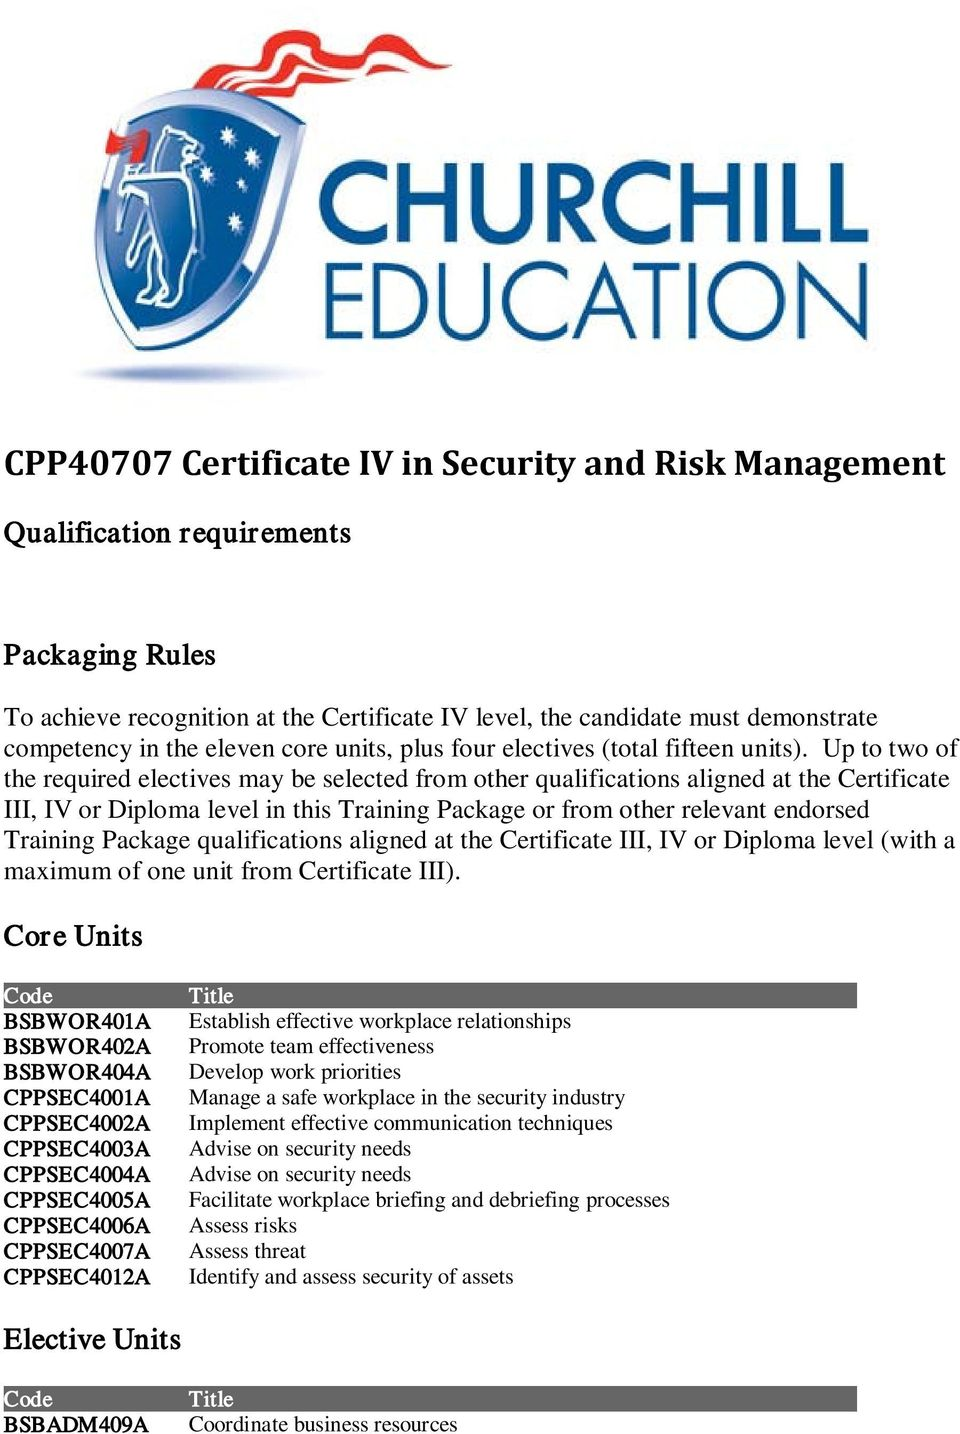 CPP40707 Certificate IV in Security and Risk Management - PDF